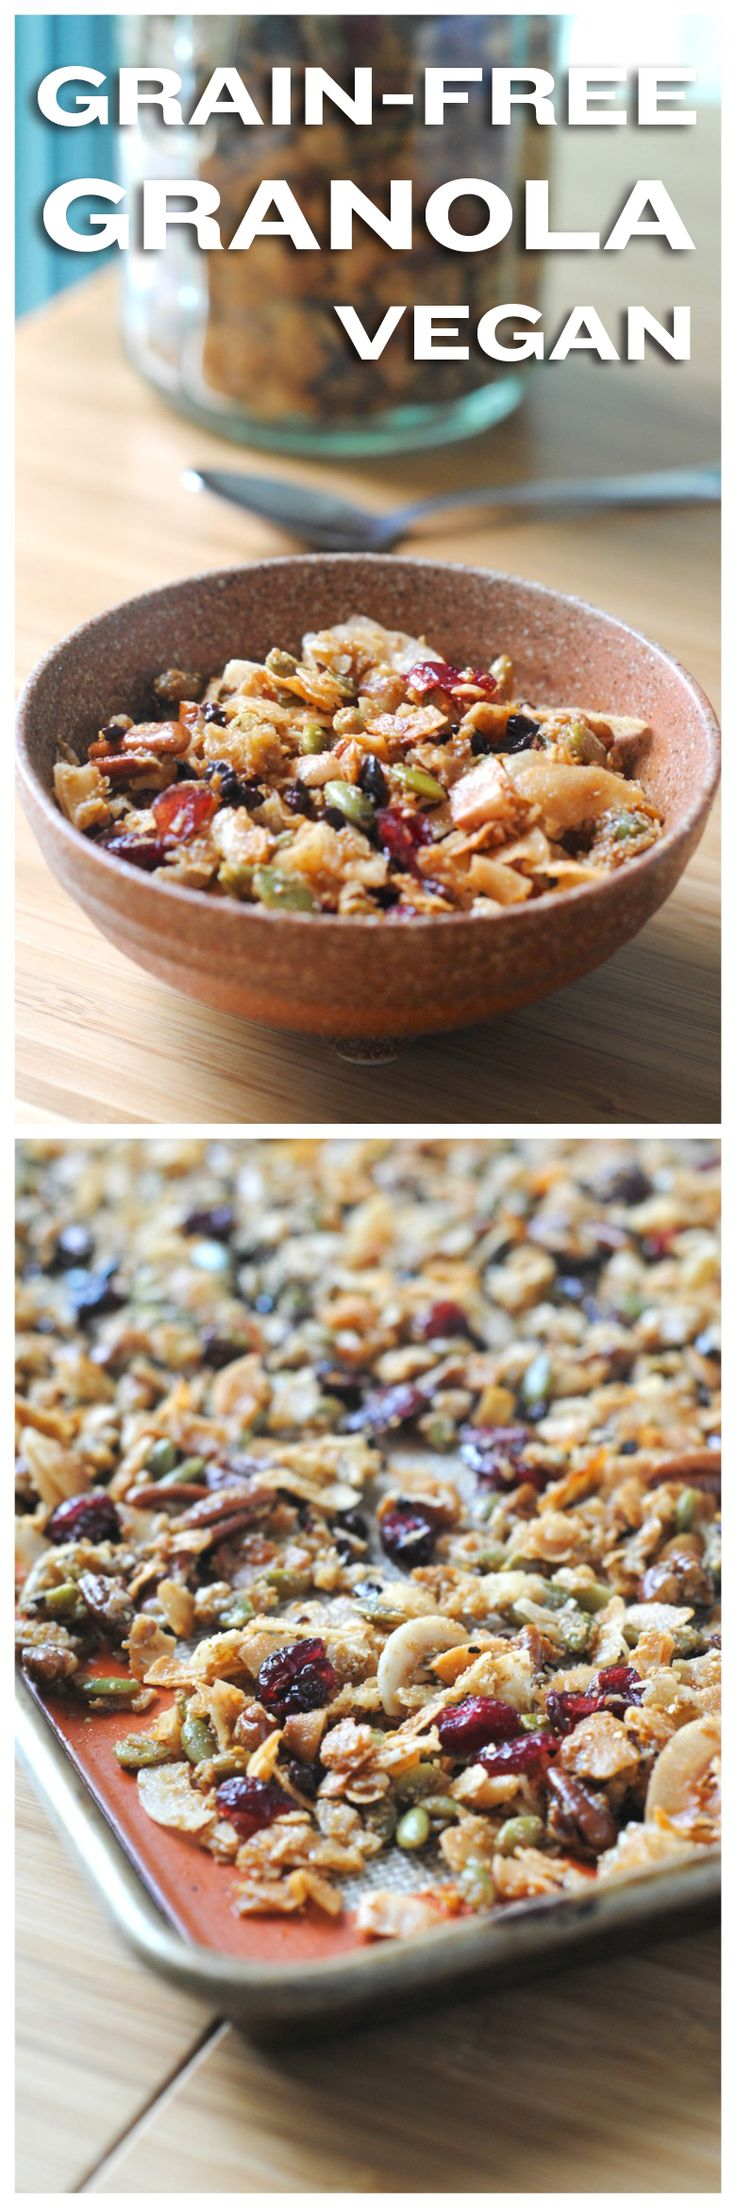 Grain-free, vegan, granola. A simple, gluten-free recipe made with simple ingredients. Más